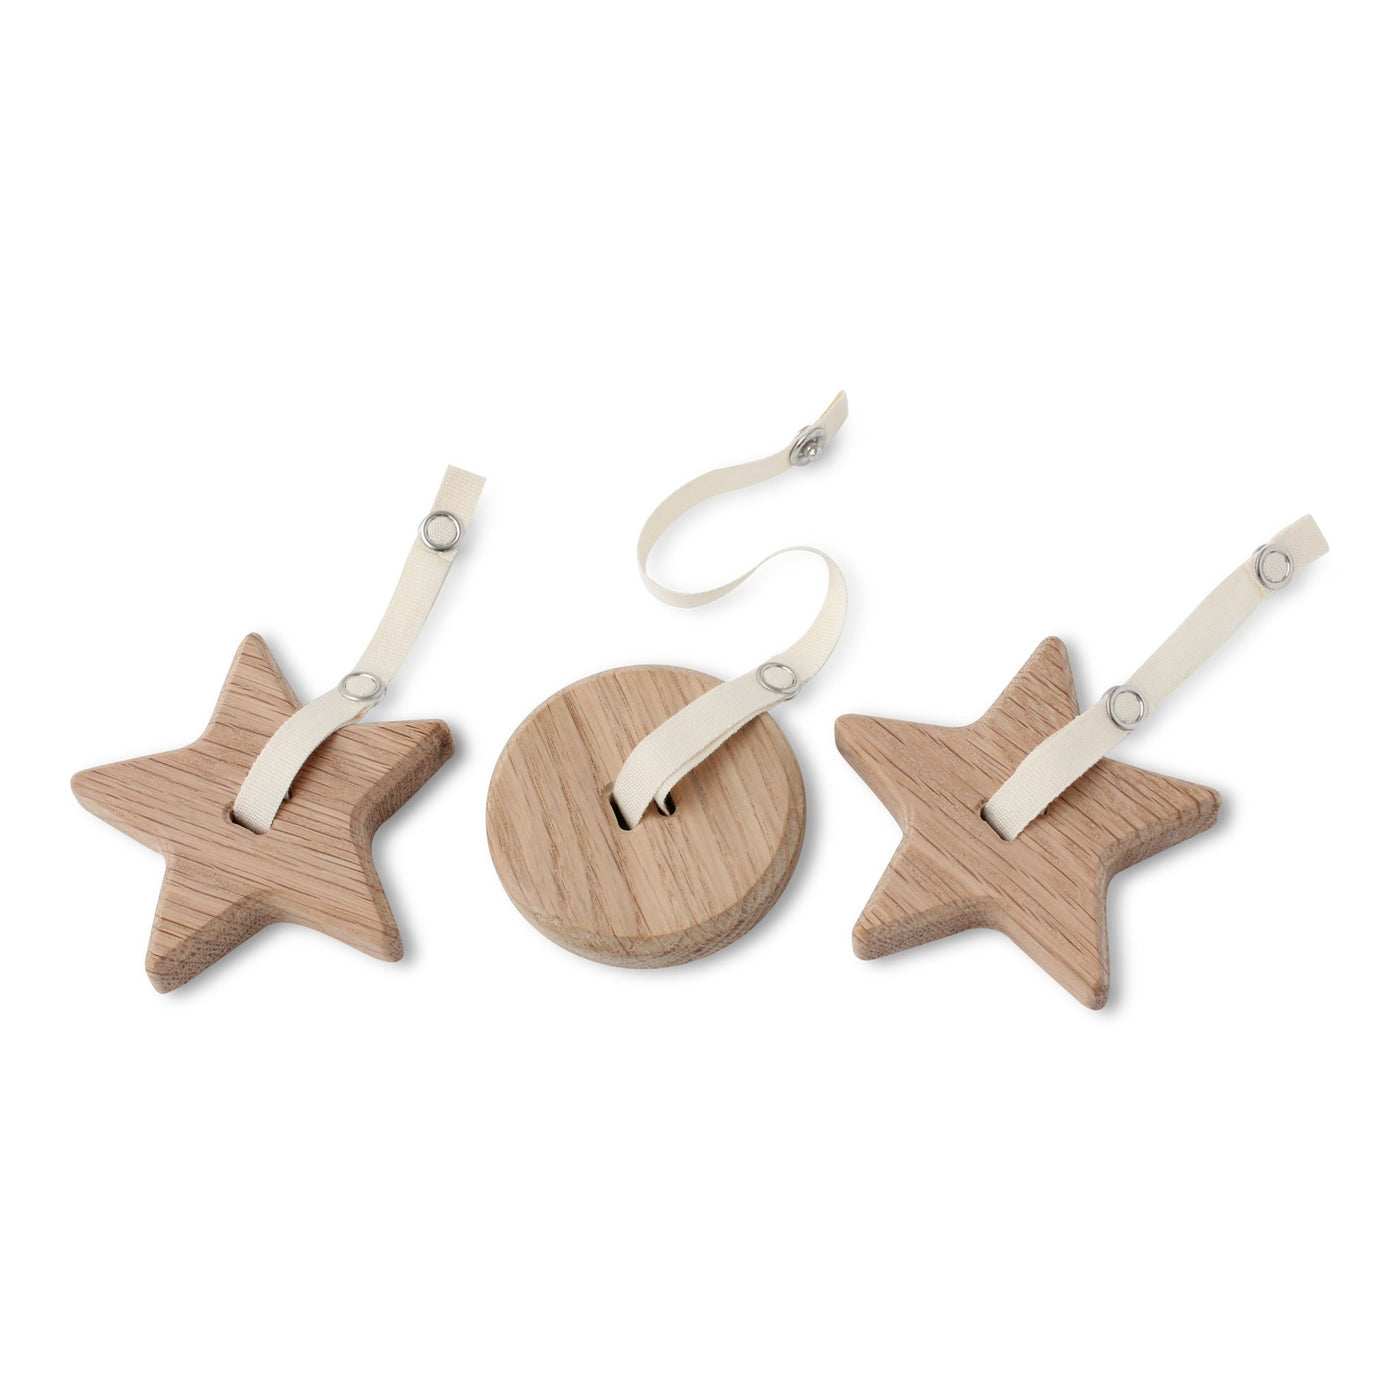 Reach Baby Gym Toys - Naked Oak set